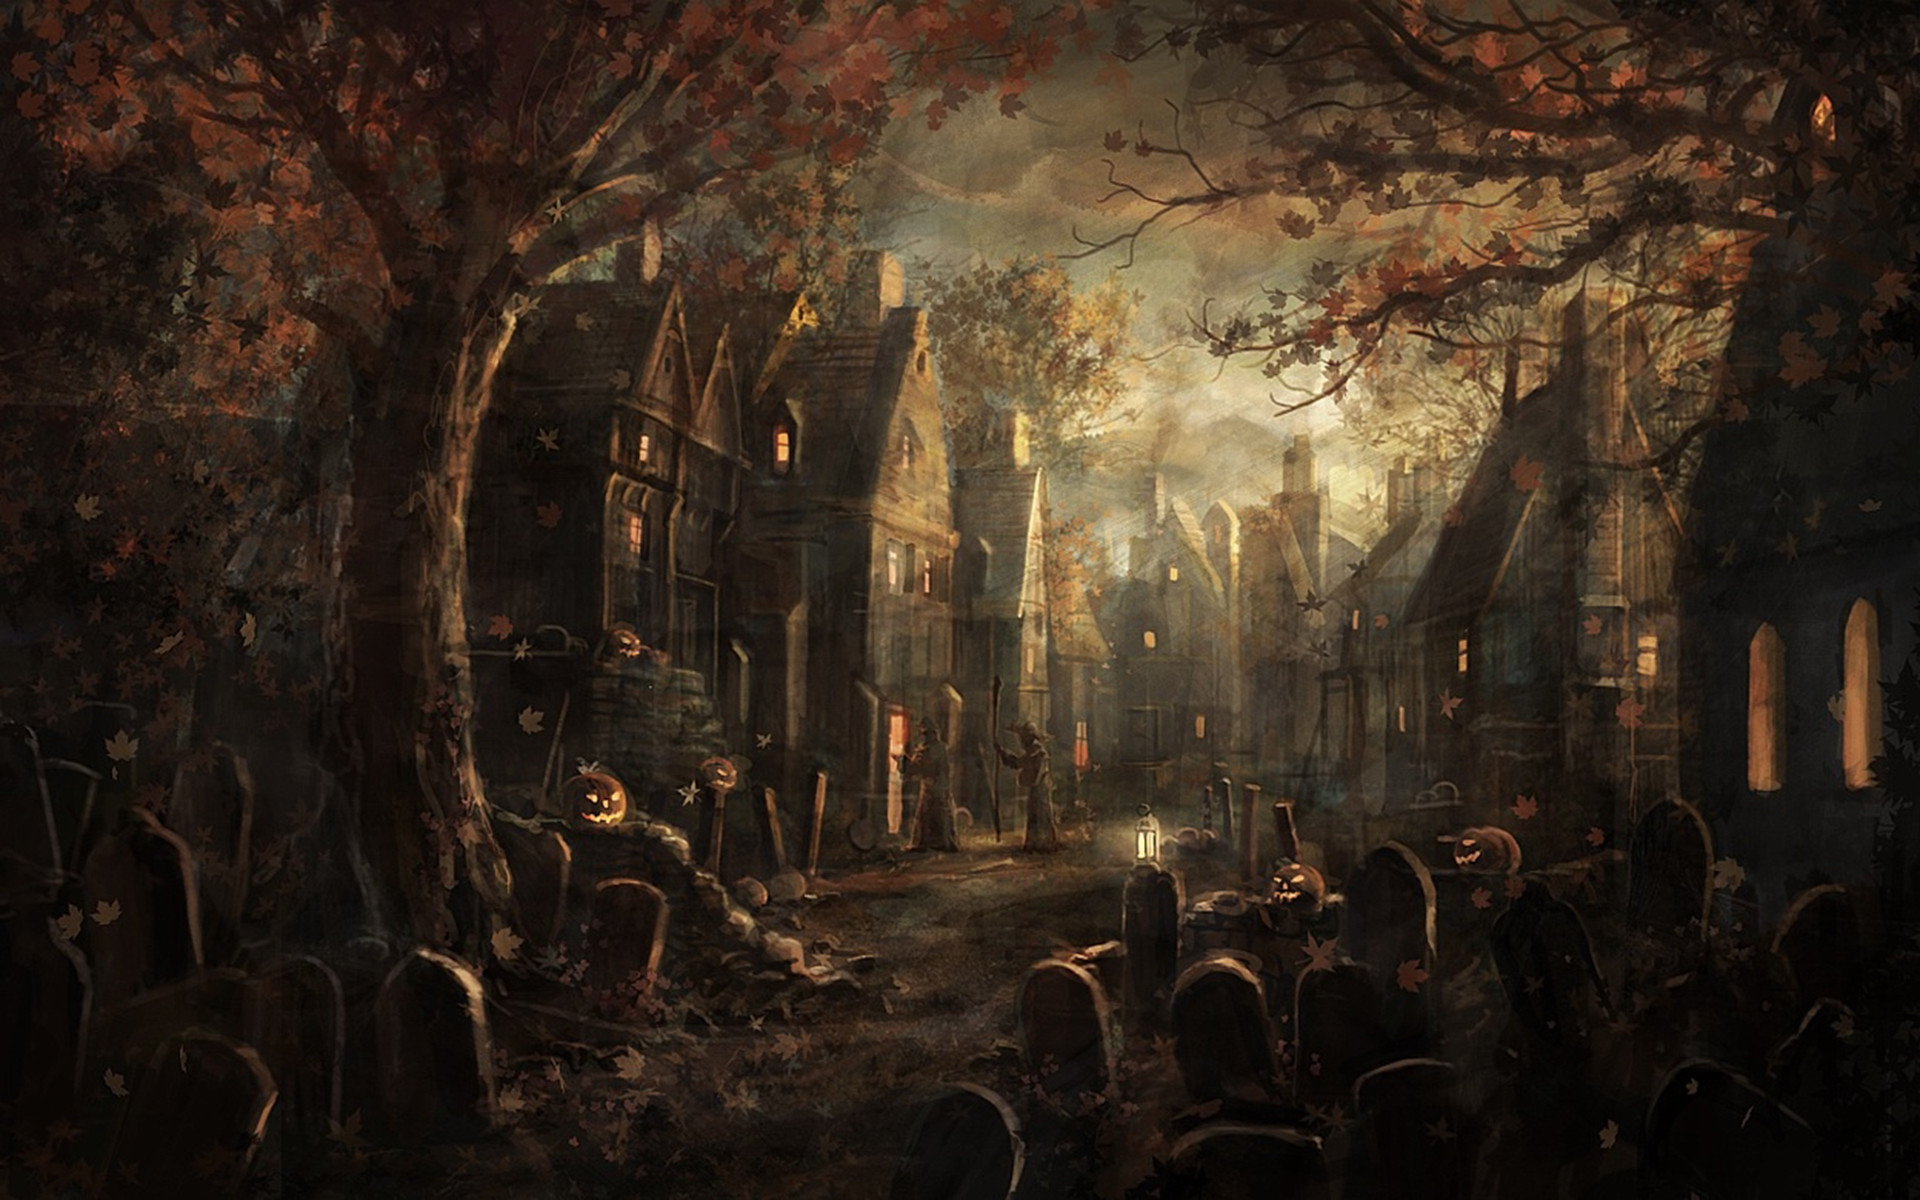 1920x1200 Hd elegant halloween background 2015 - Hd Elegant Halloween Backgrounds  2015 Desktop Background